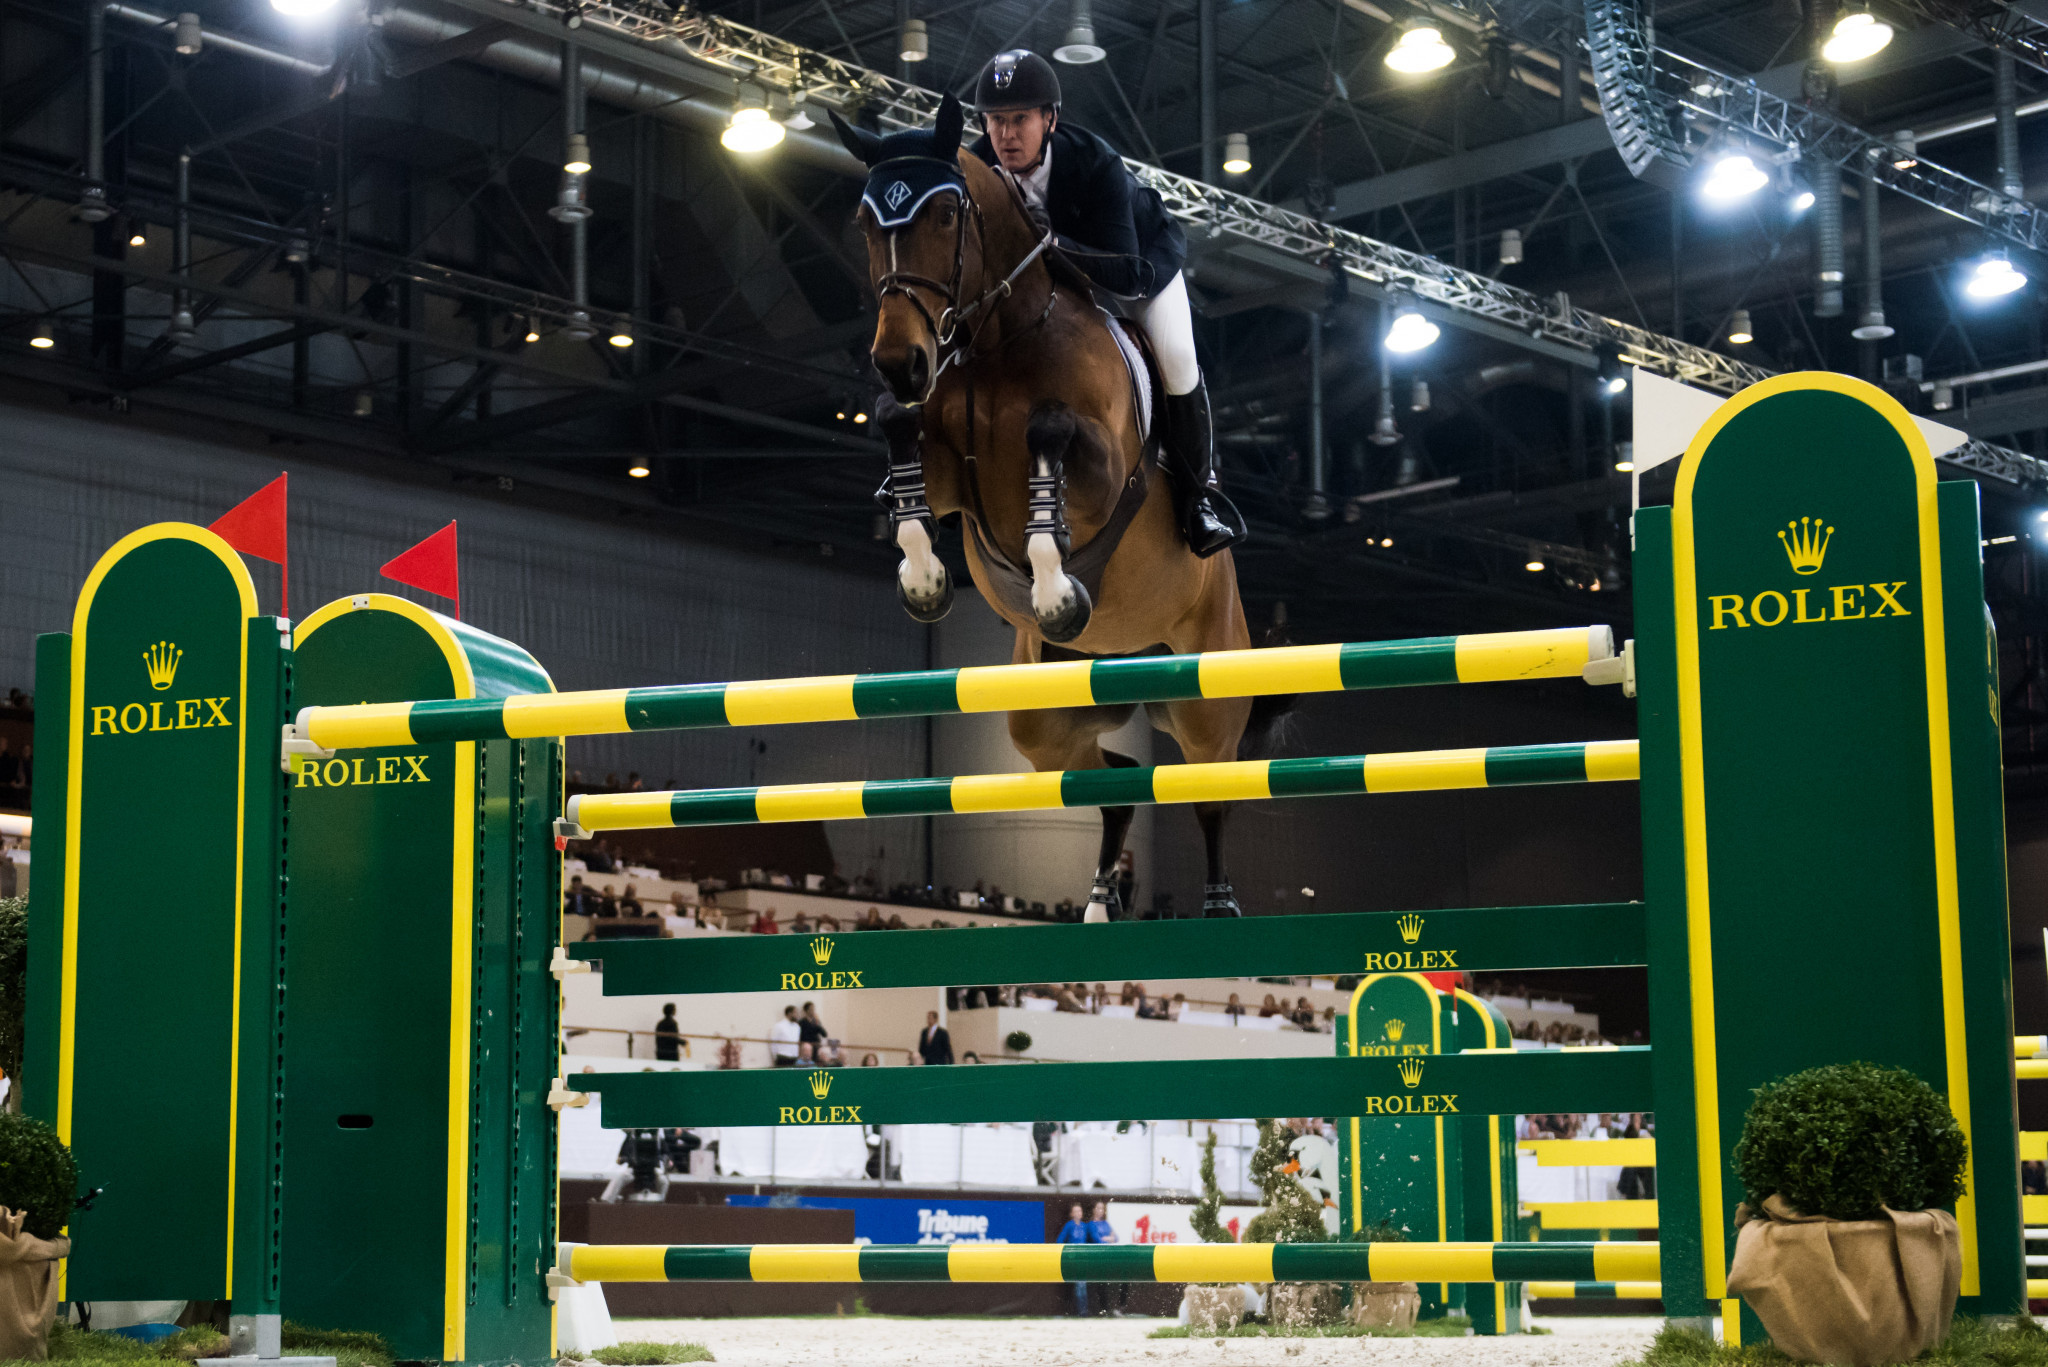 HH Azur, the mare ridden by America's McLain Ward, has been voted the World's Best Jumping Horse by the FEI ©Getty Images